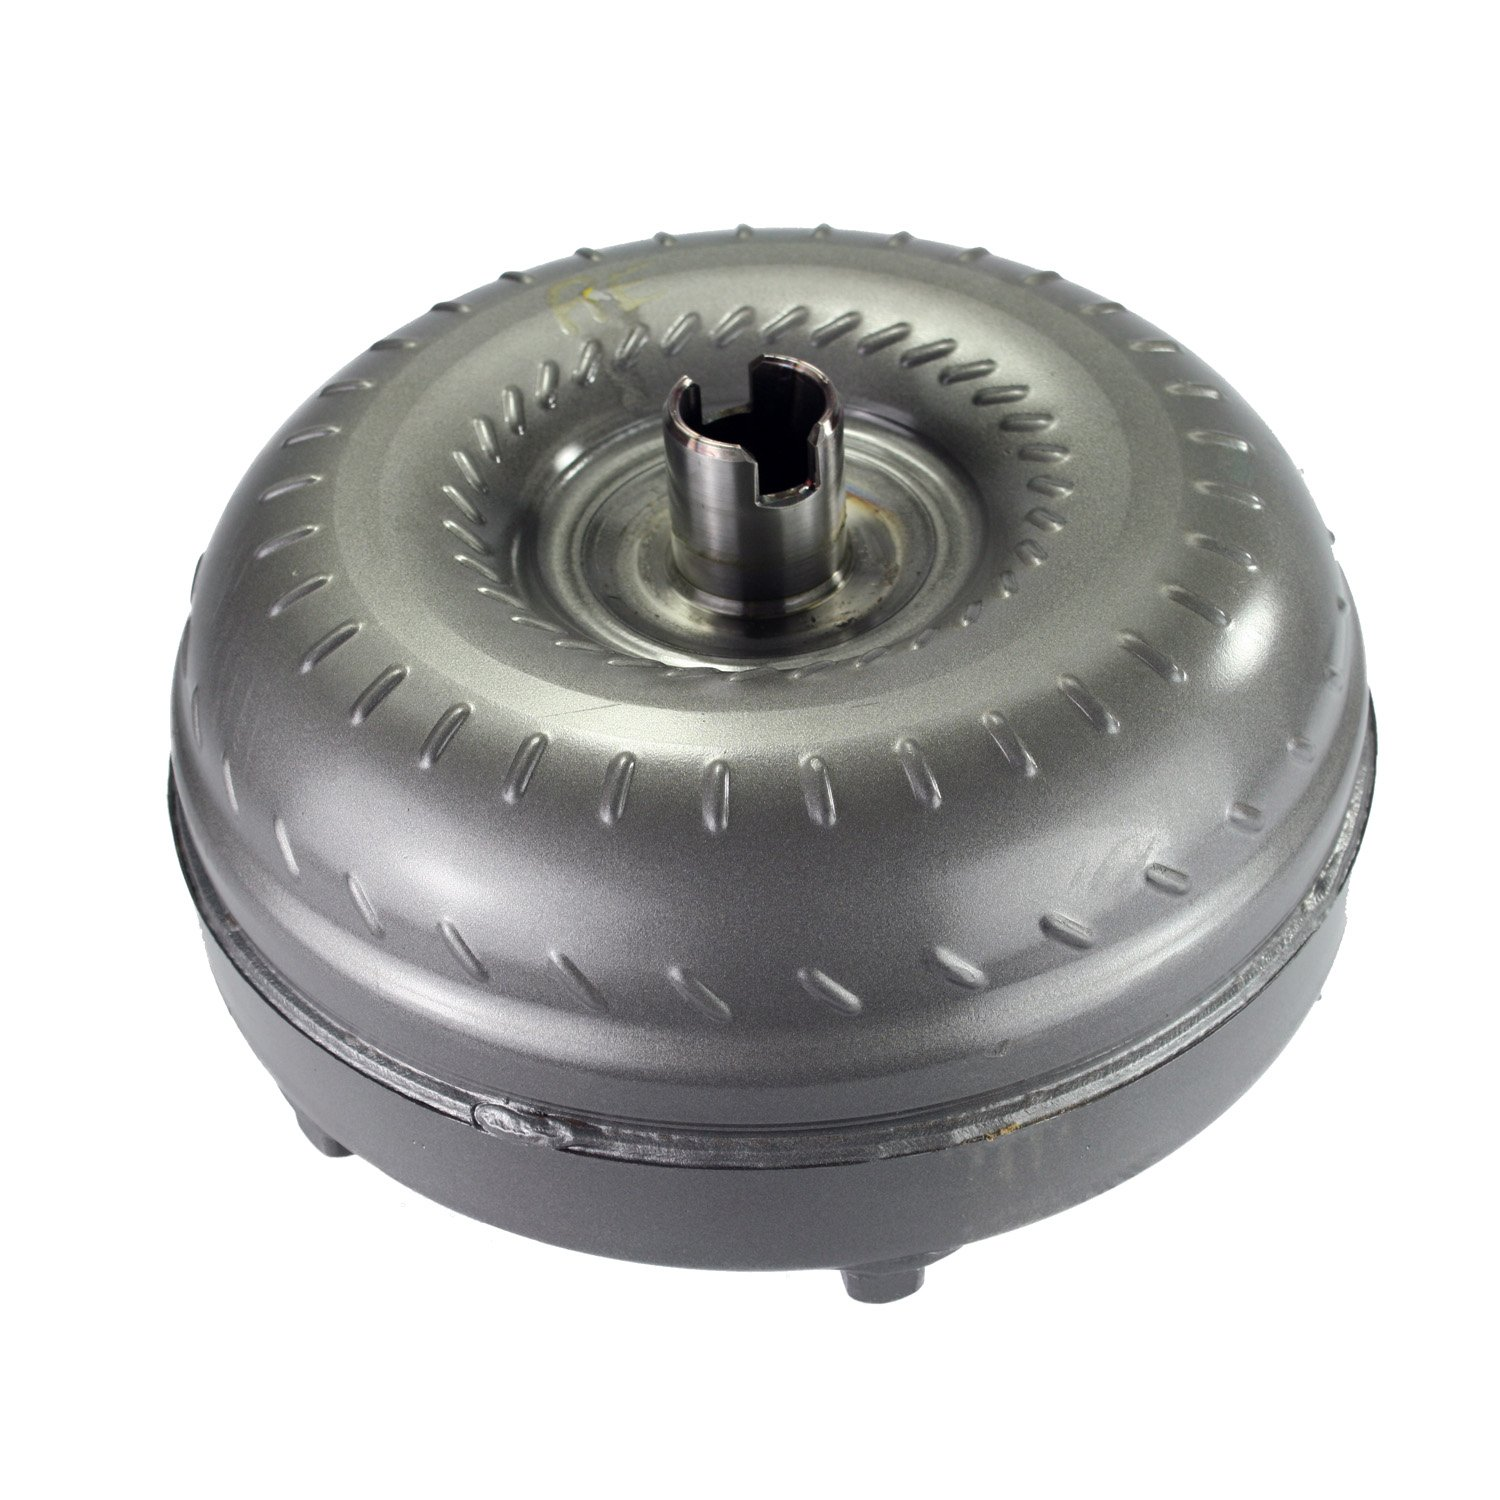 : A-618// 47RE ; 6 Mounting Pads with 12.250 Bolt Pattern DACCO 592-48RE Torque Converter Remanufactured s Fits Transmission